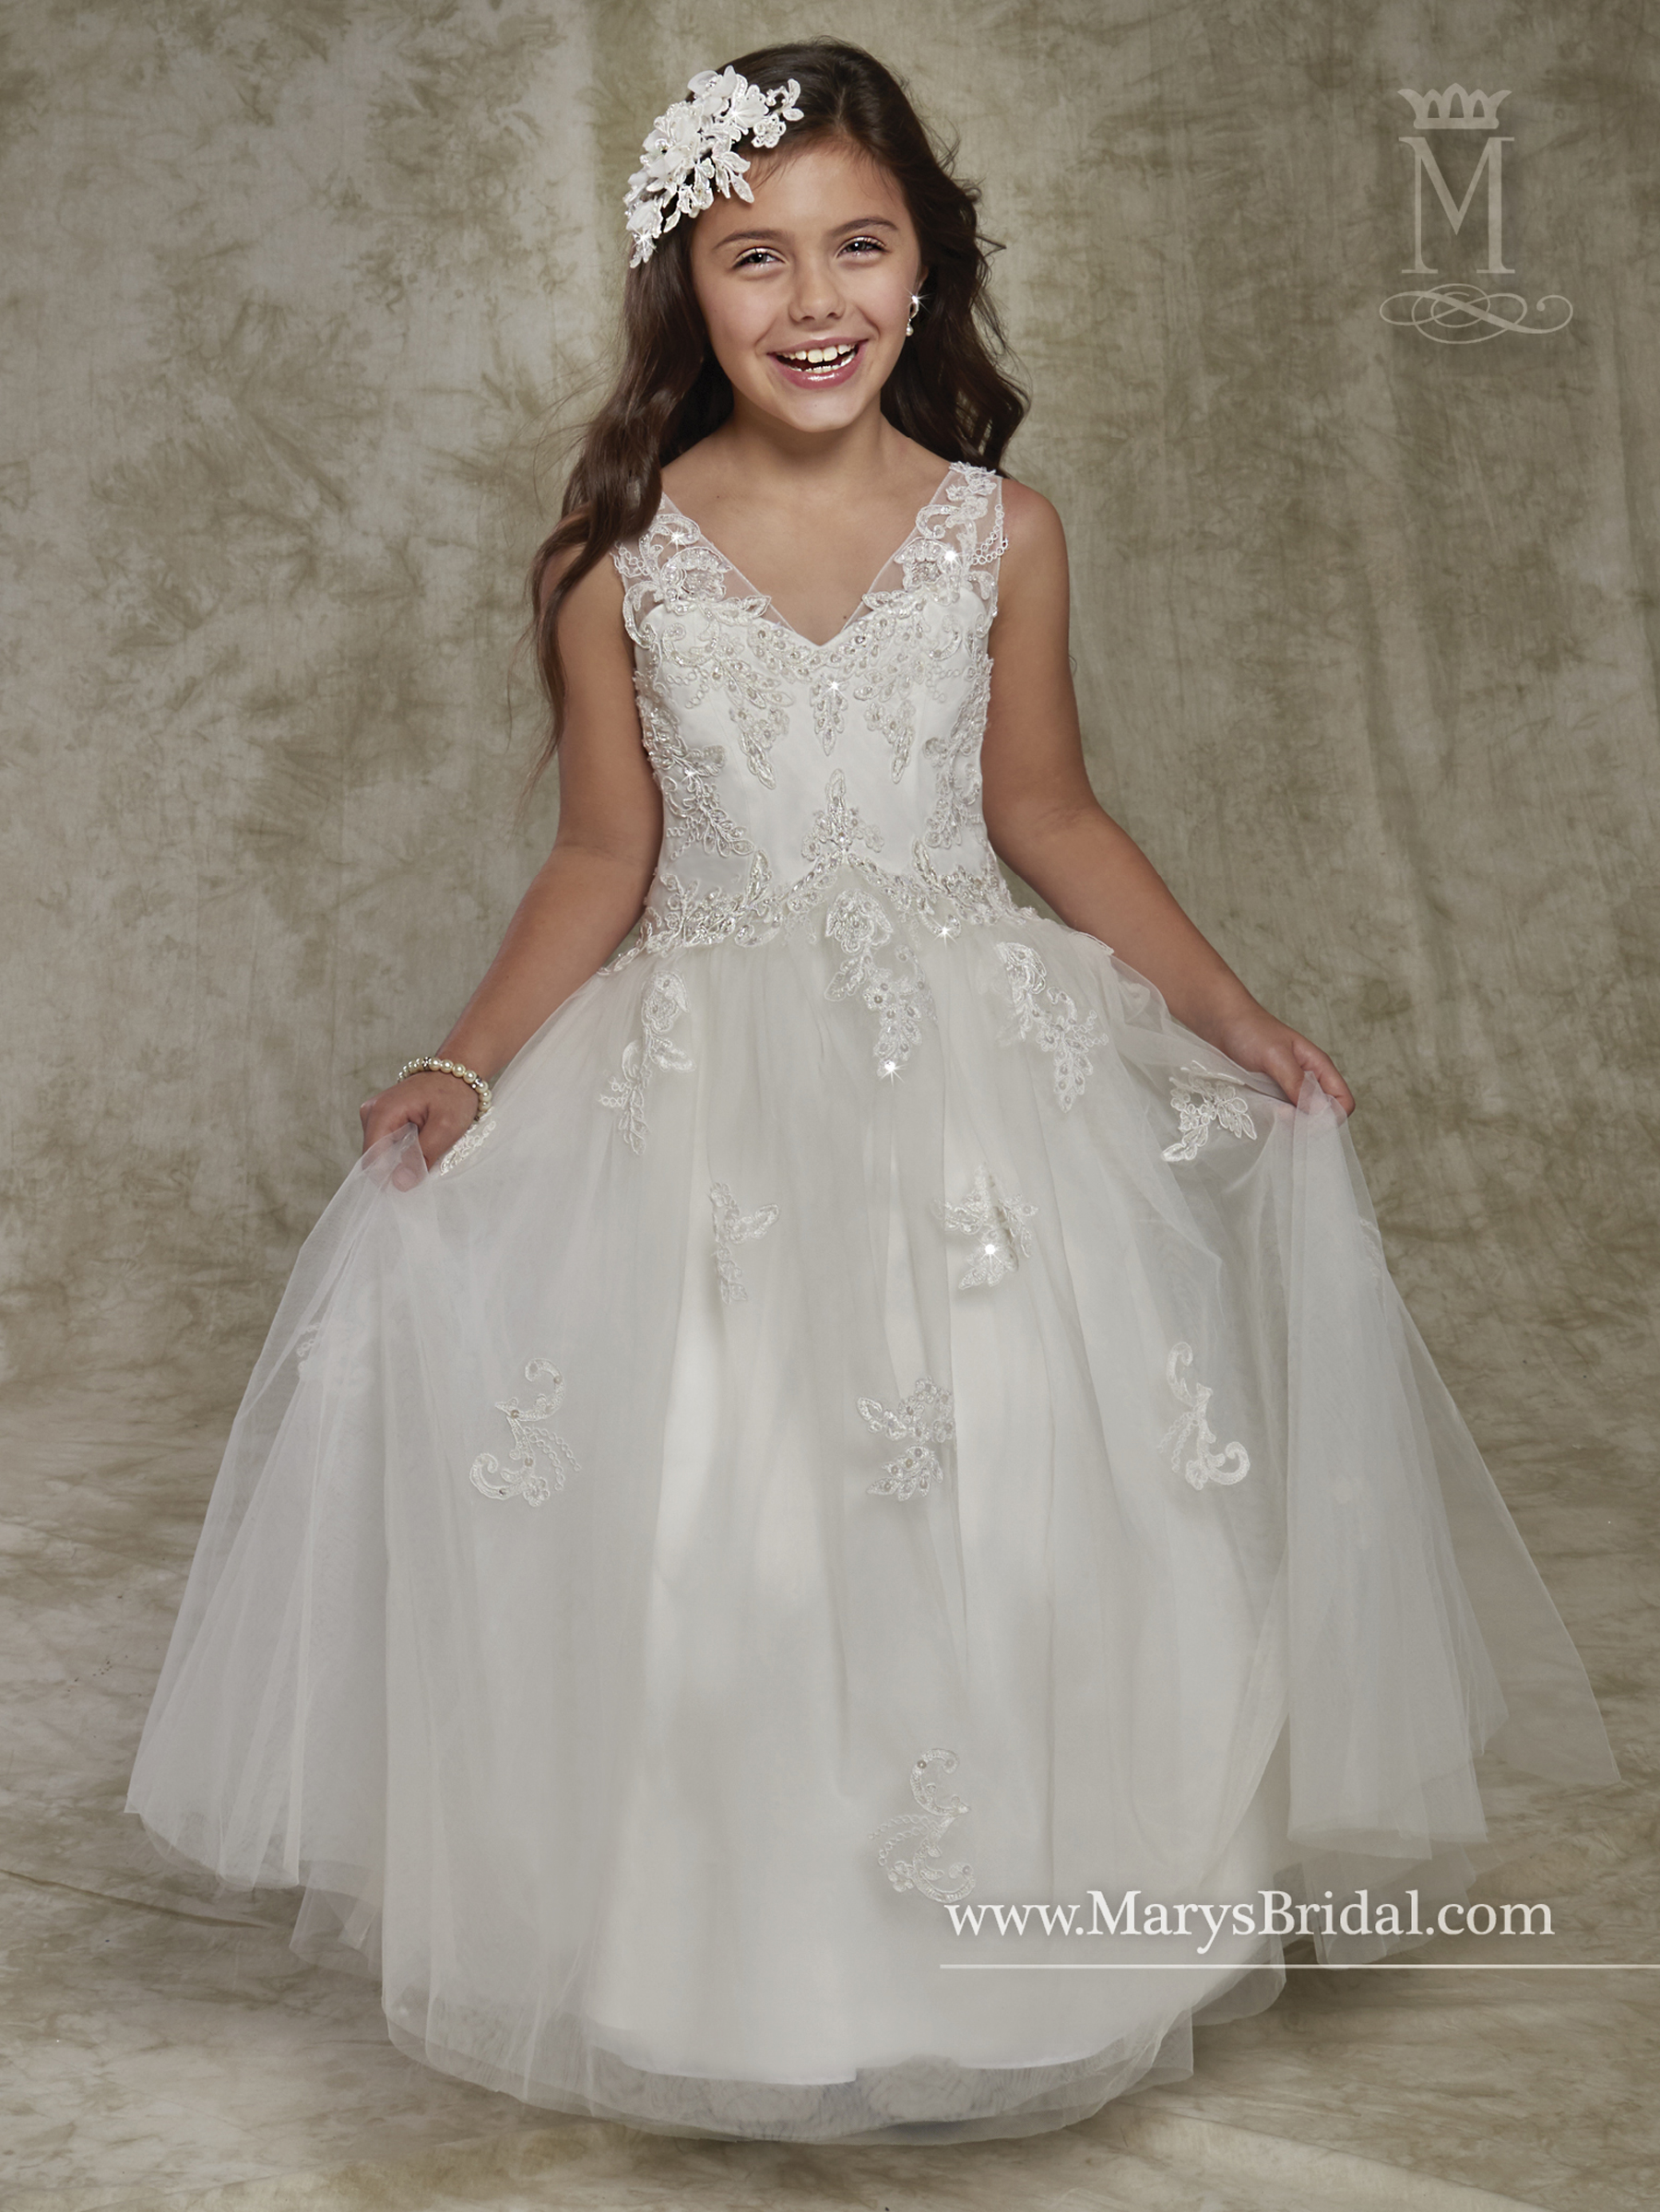 Angel Flower Girl Dresses Style F536 In Ivory Or White Color